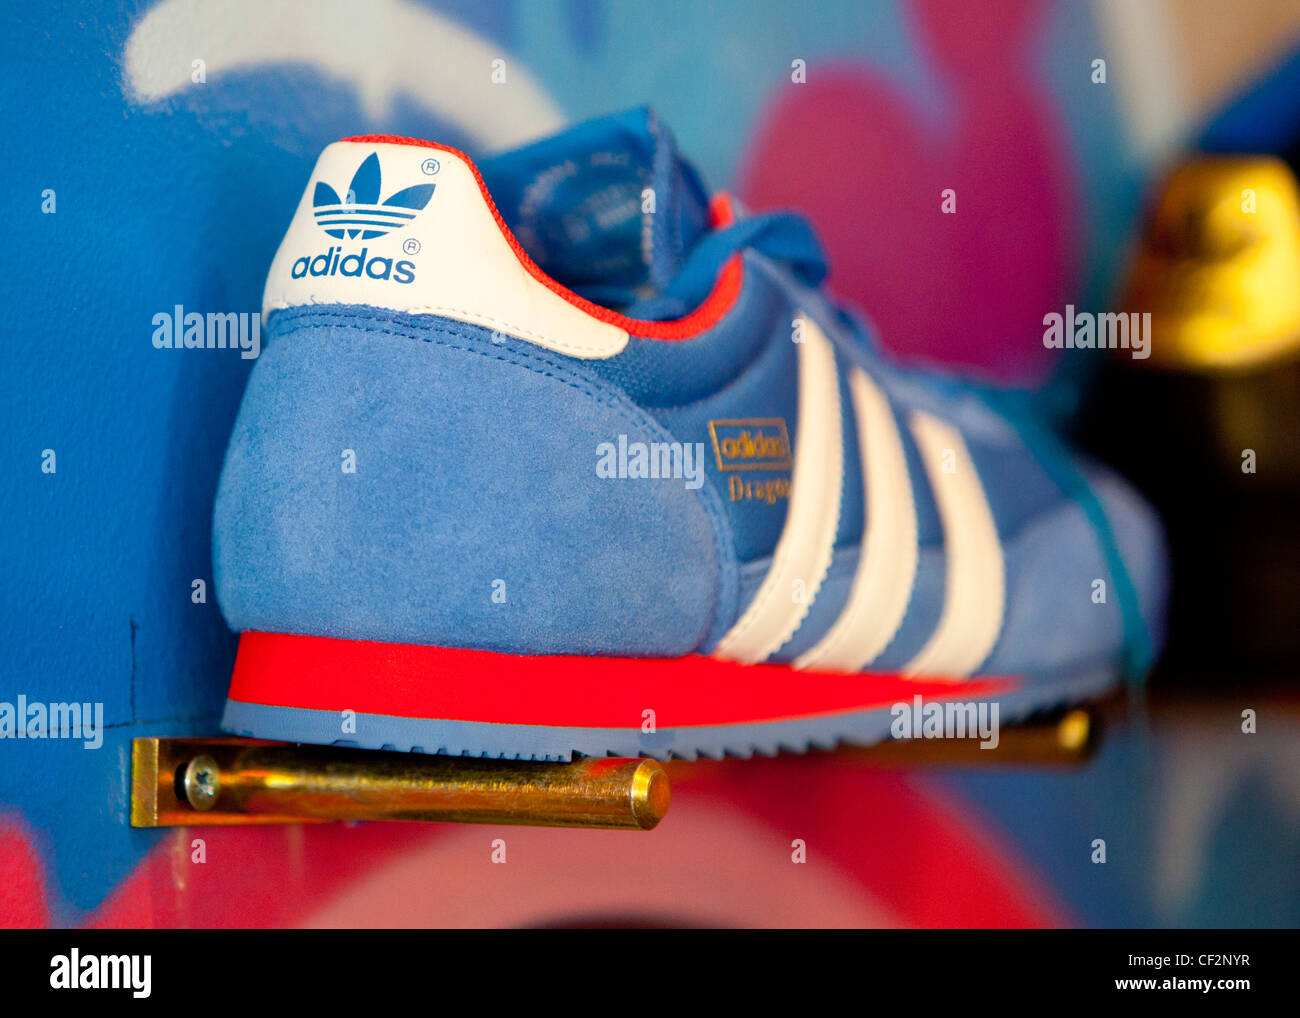 Adidas trainer in display for sale - Stock Image